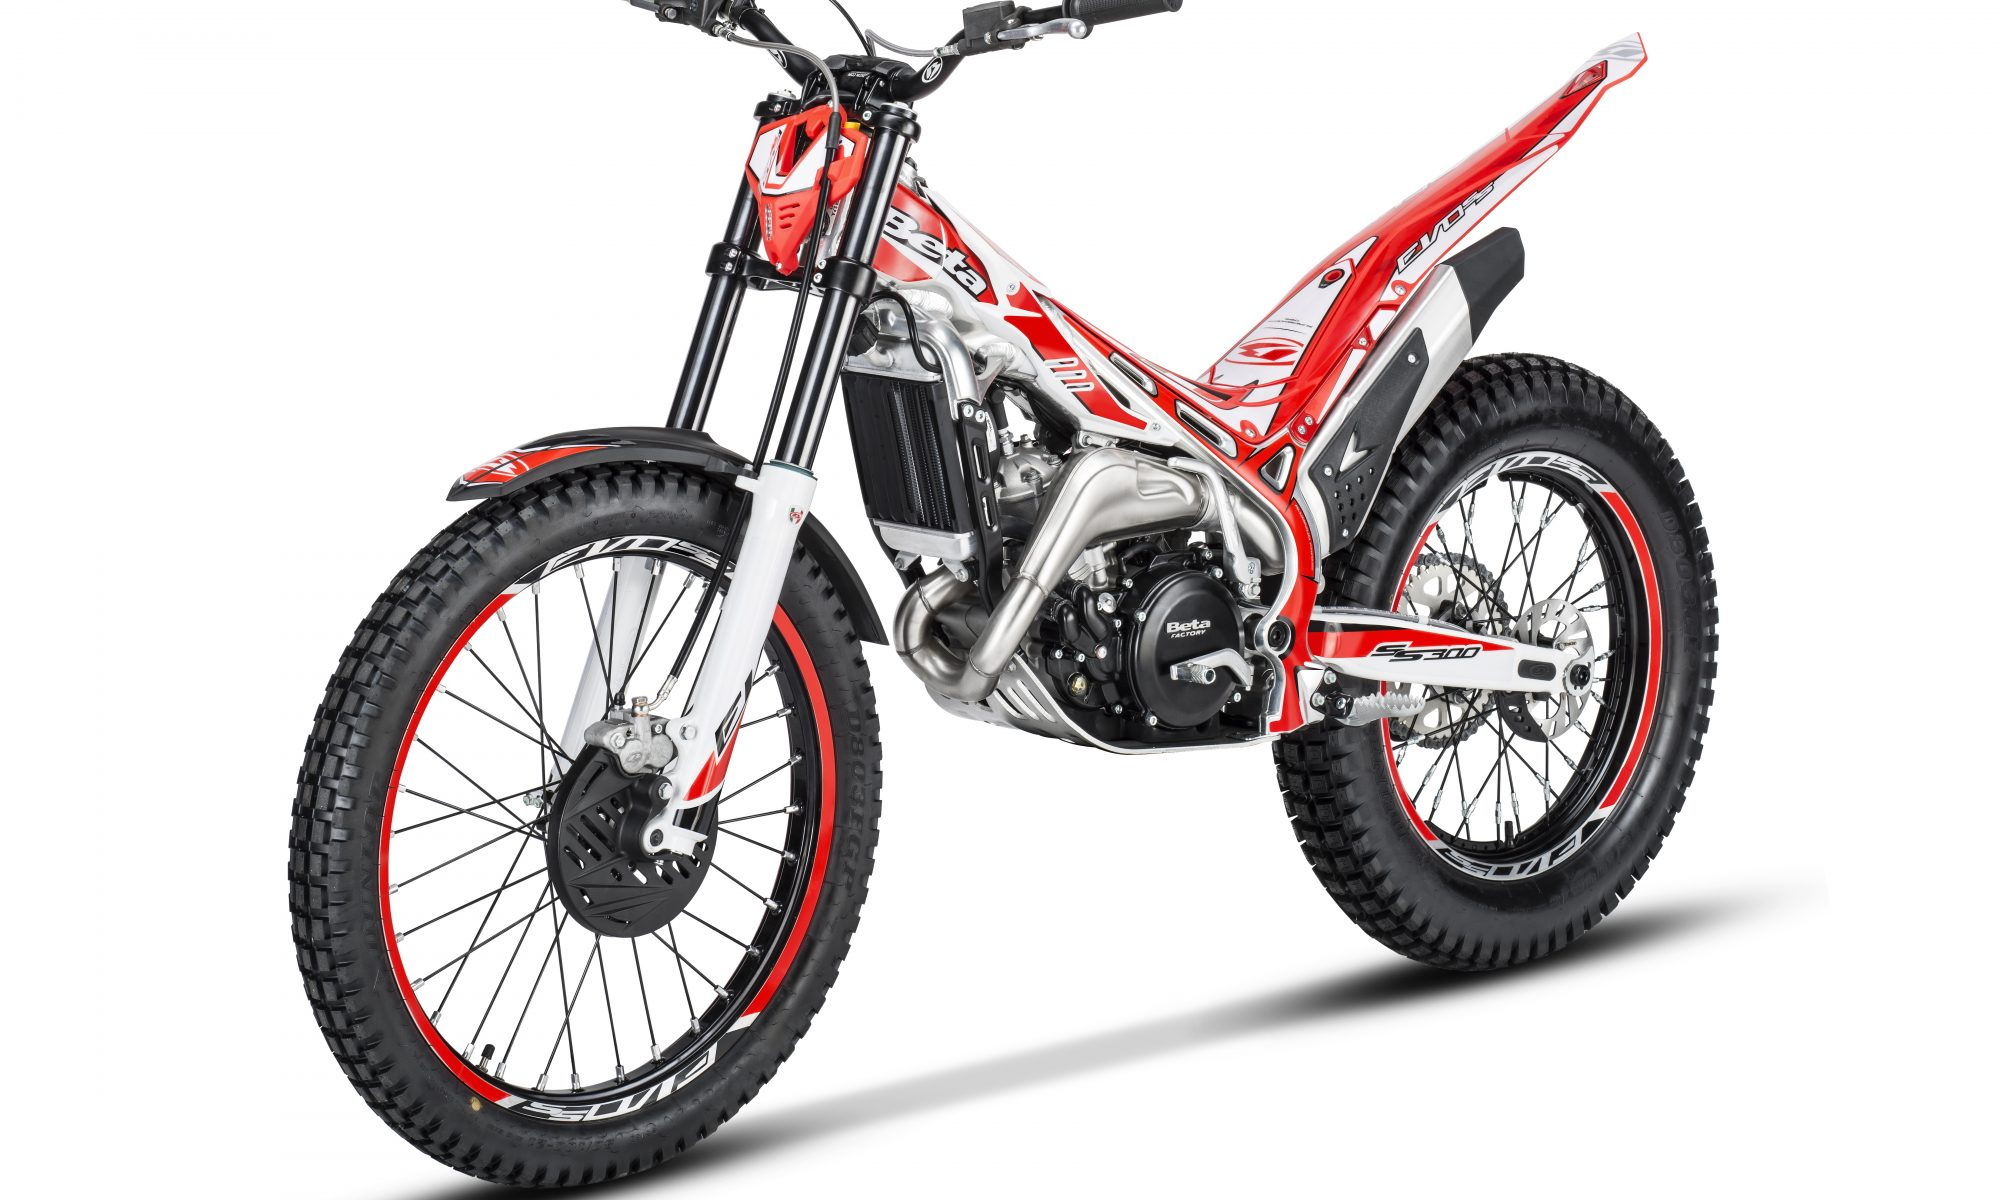 Beta EVO 300 SS 2T 2019 from Trialsport